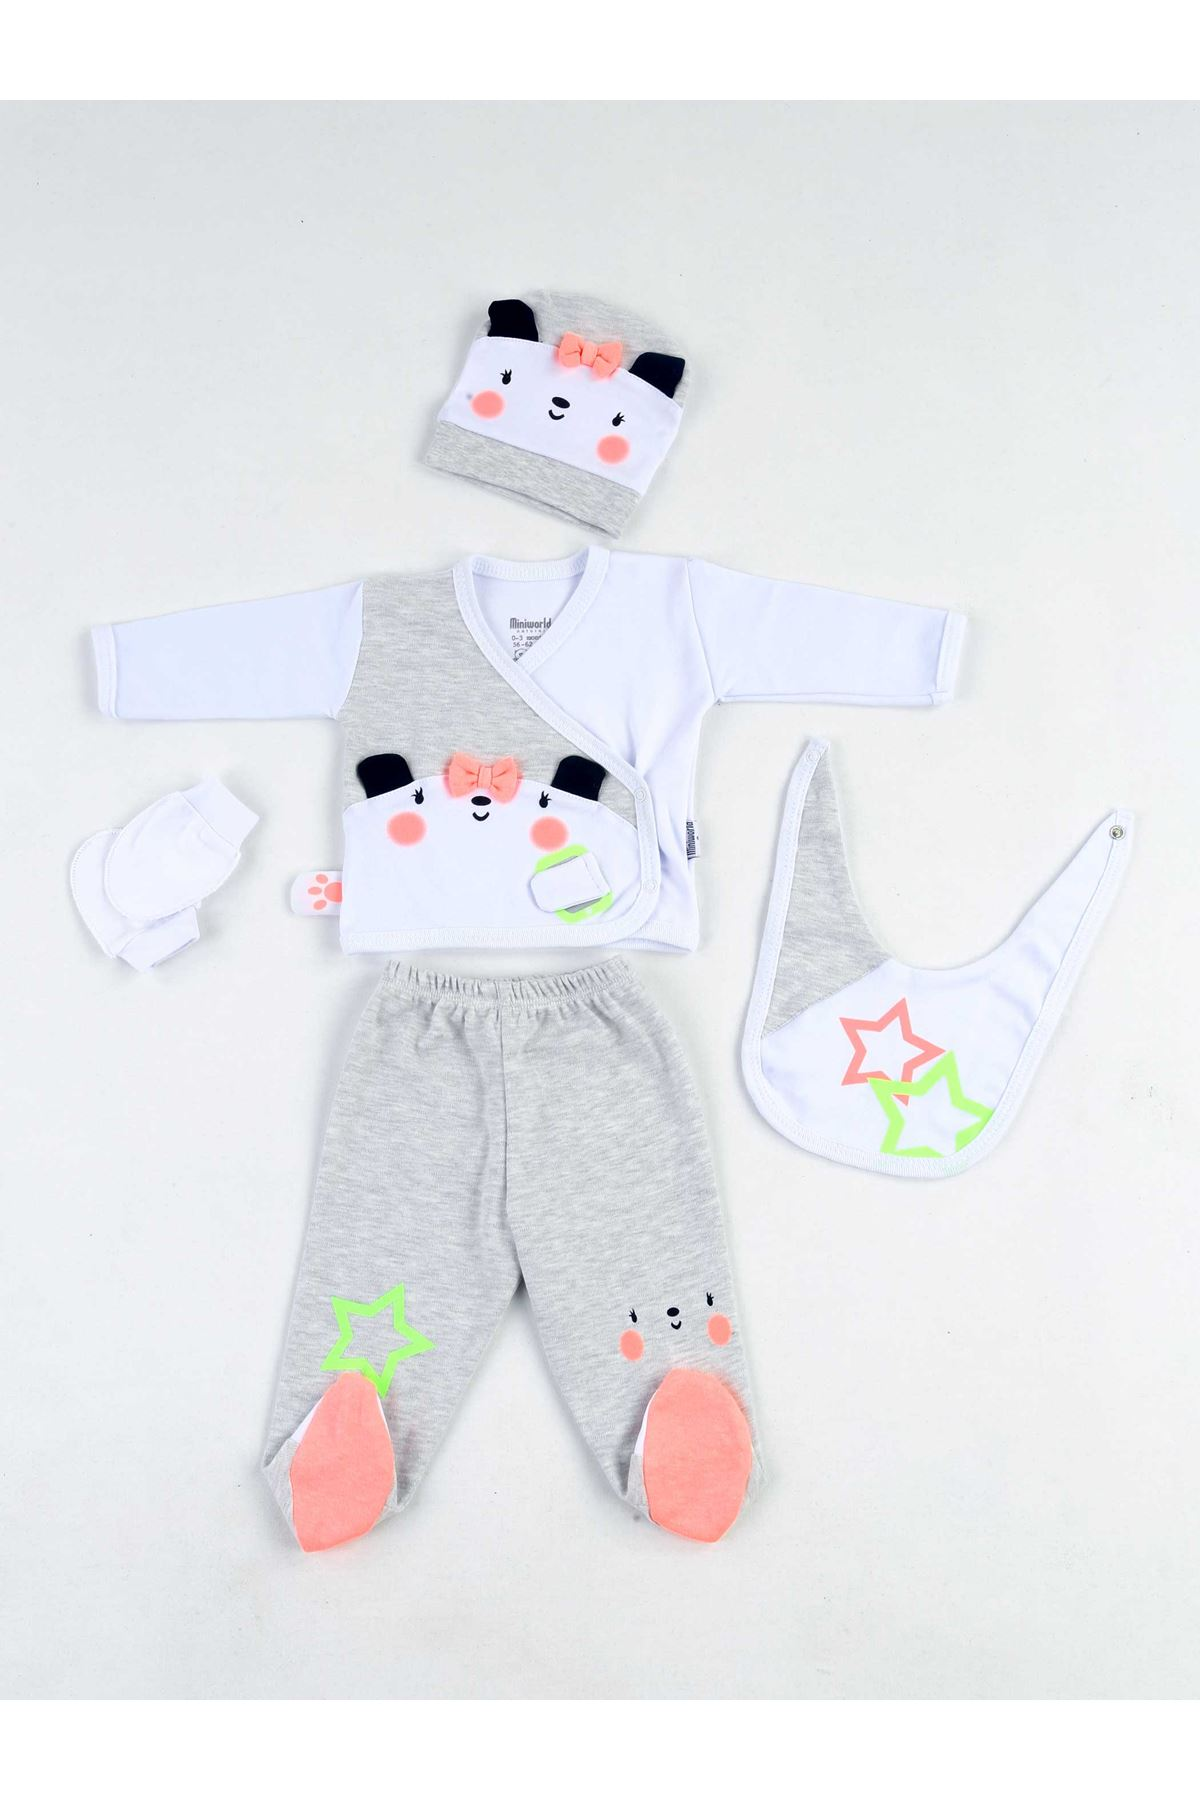 White Newborn Baby 10 piece suit set cotton Gentleman Princess Hospital Outlet daily casual Babies clothes style fashion